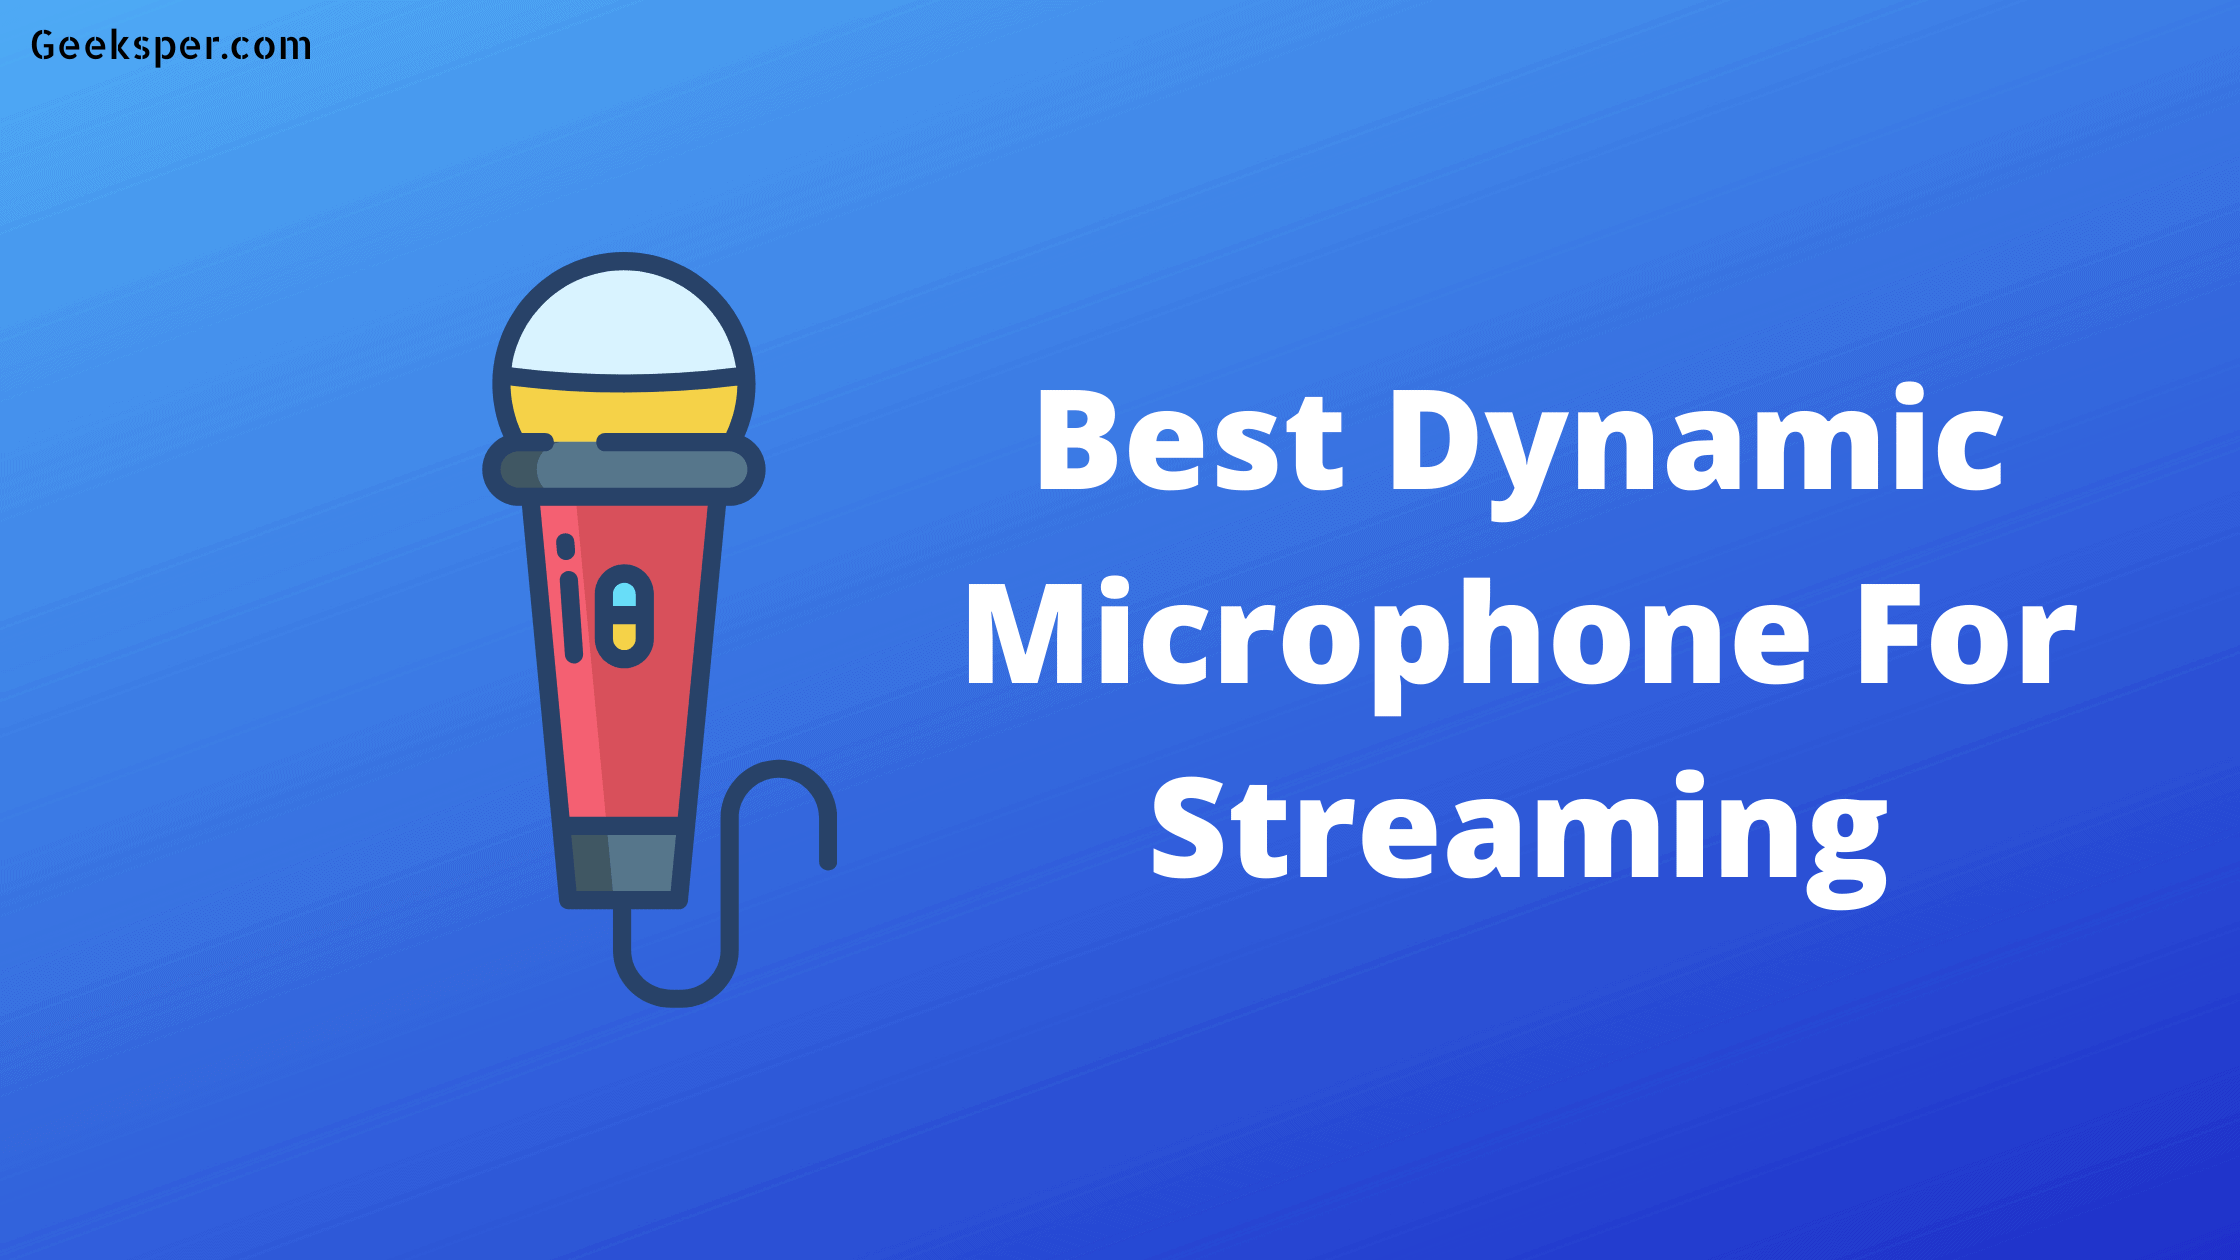 Best Dynamic Microphone For Streaming